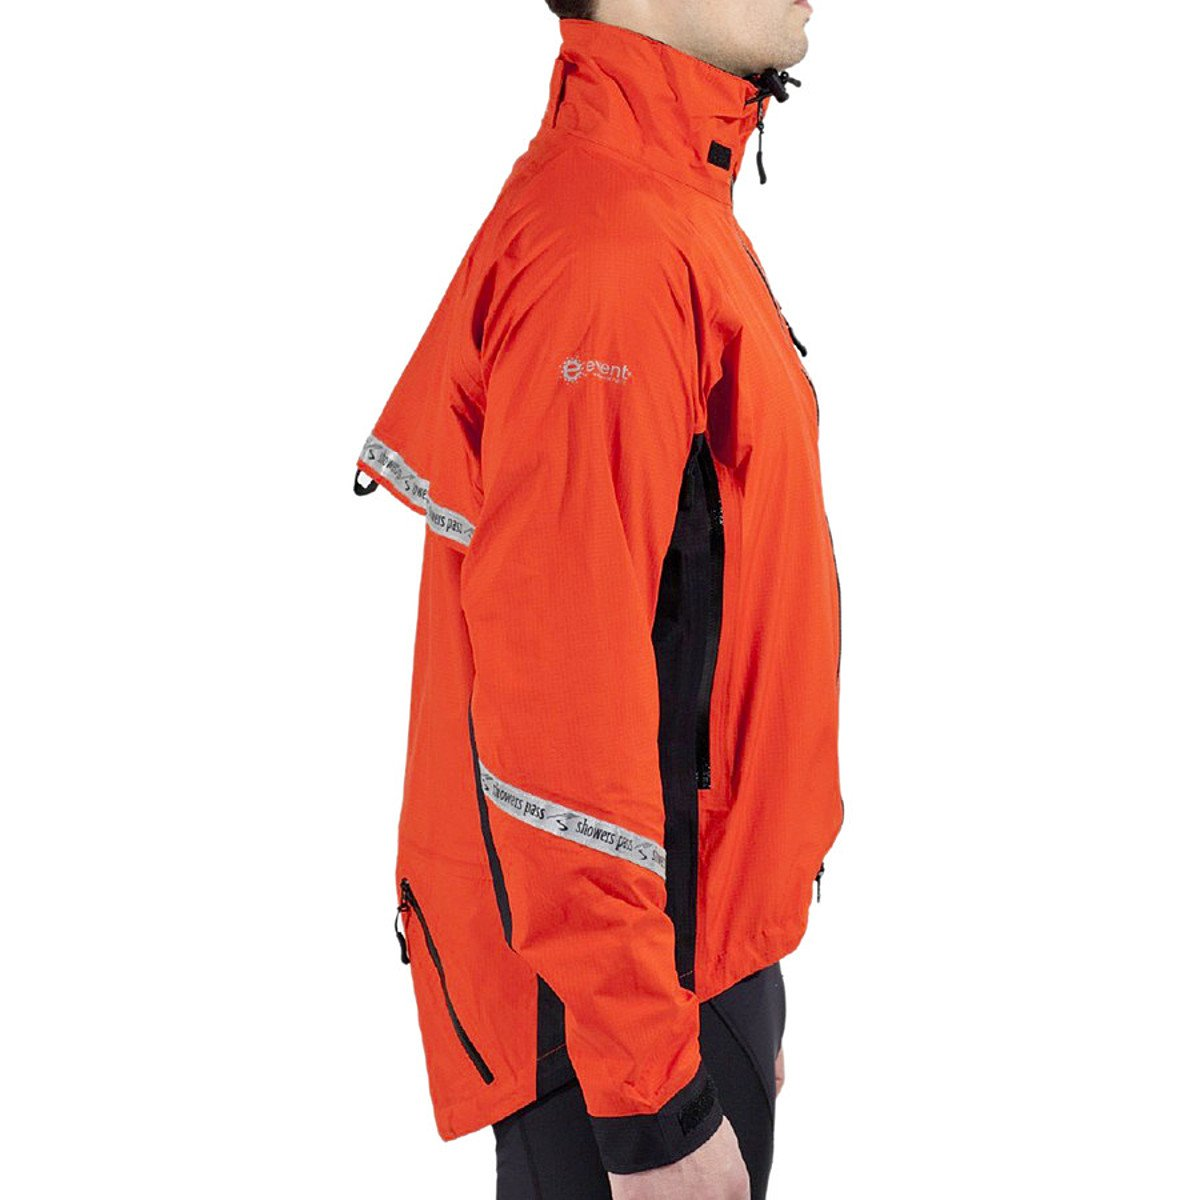 Showers Pass Elite 2.1 Jacket S Mens Cayenne Red